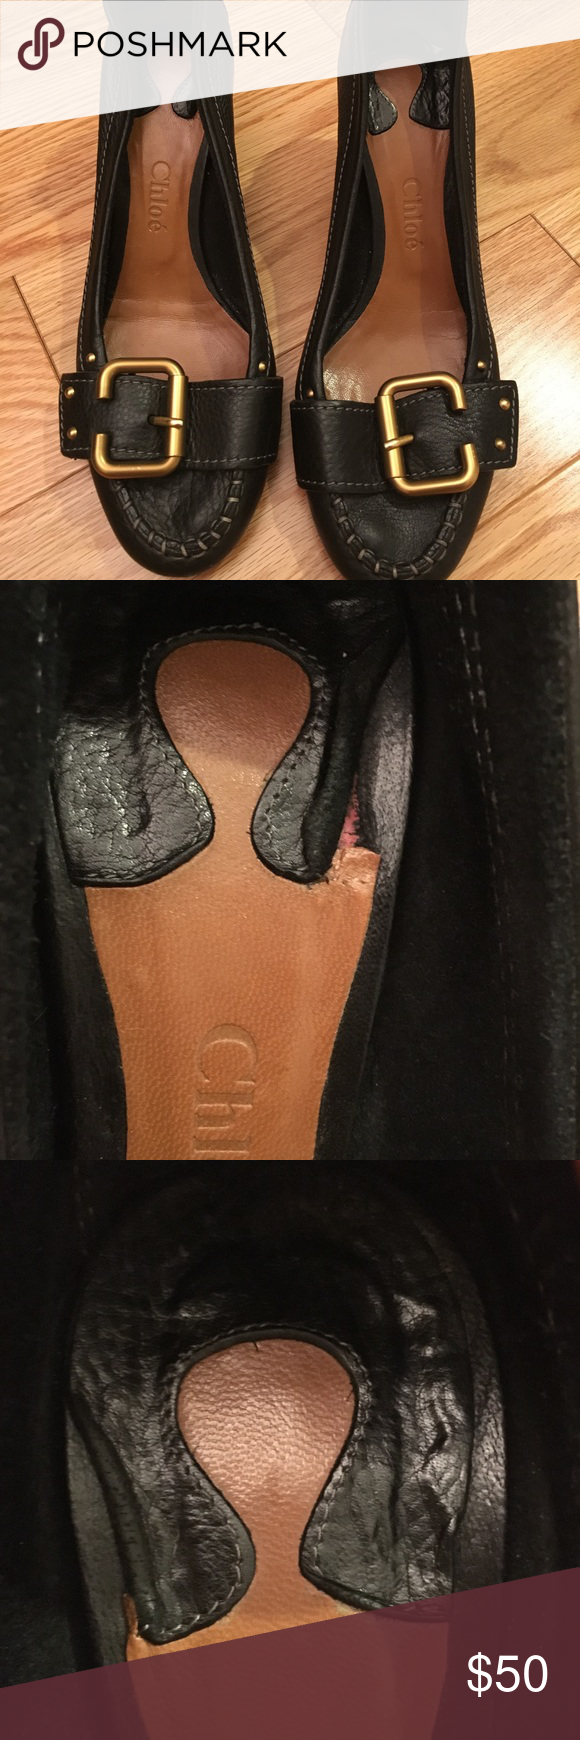 Chloe leather buckle pumps. Size 37.5 Black leather buckle pumps by Chloe.  Size 37.5 interior pad at the heels are coming up and there is some chipping on the right heel.   Please review the imperfections in the photos above.  Leather is in very good condition.  Very cute shoes. 👠 Chloe Shoes Heels